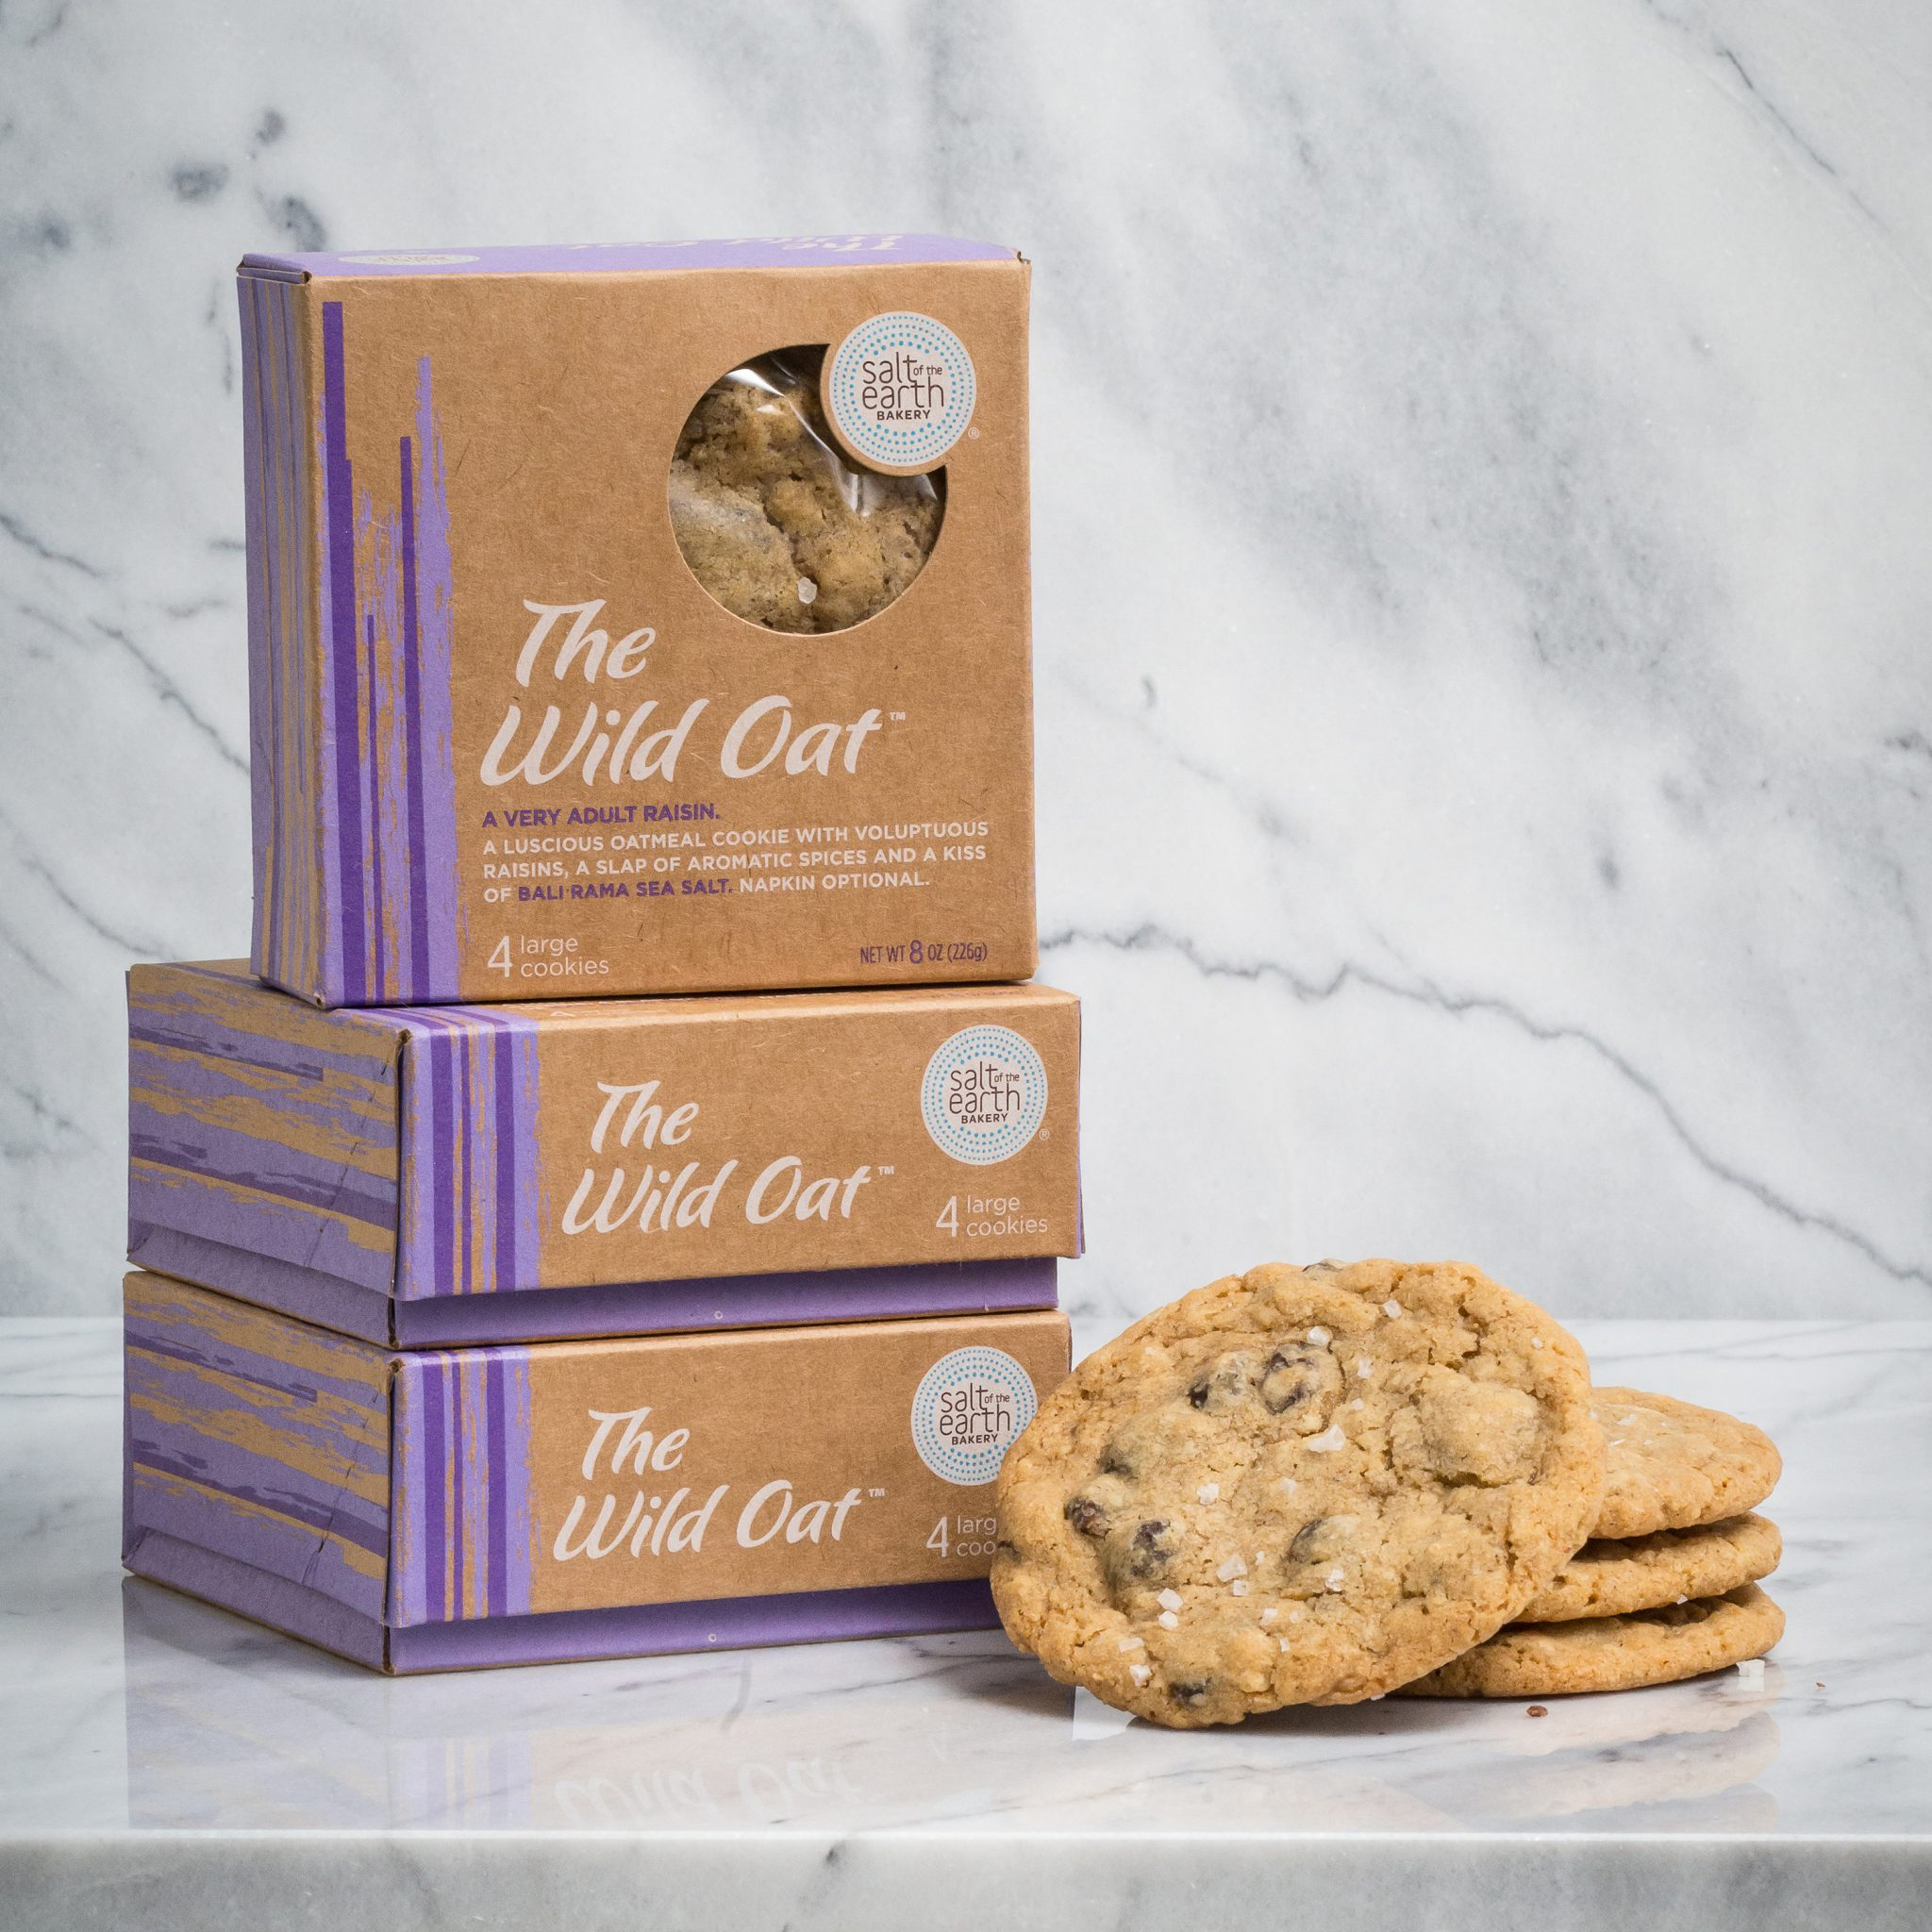 The Wild Oat - A very adult oatmeal raisin. A luscious oatmeal cookie with voluptuous raisins, a slap of aromatic spices, and a kiss of Bali Rama Sea Salt.